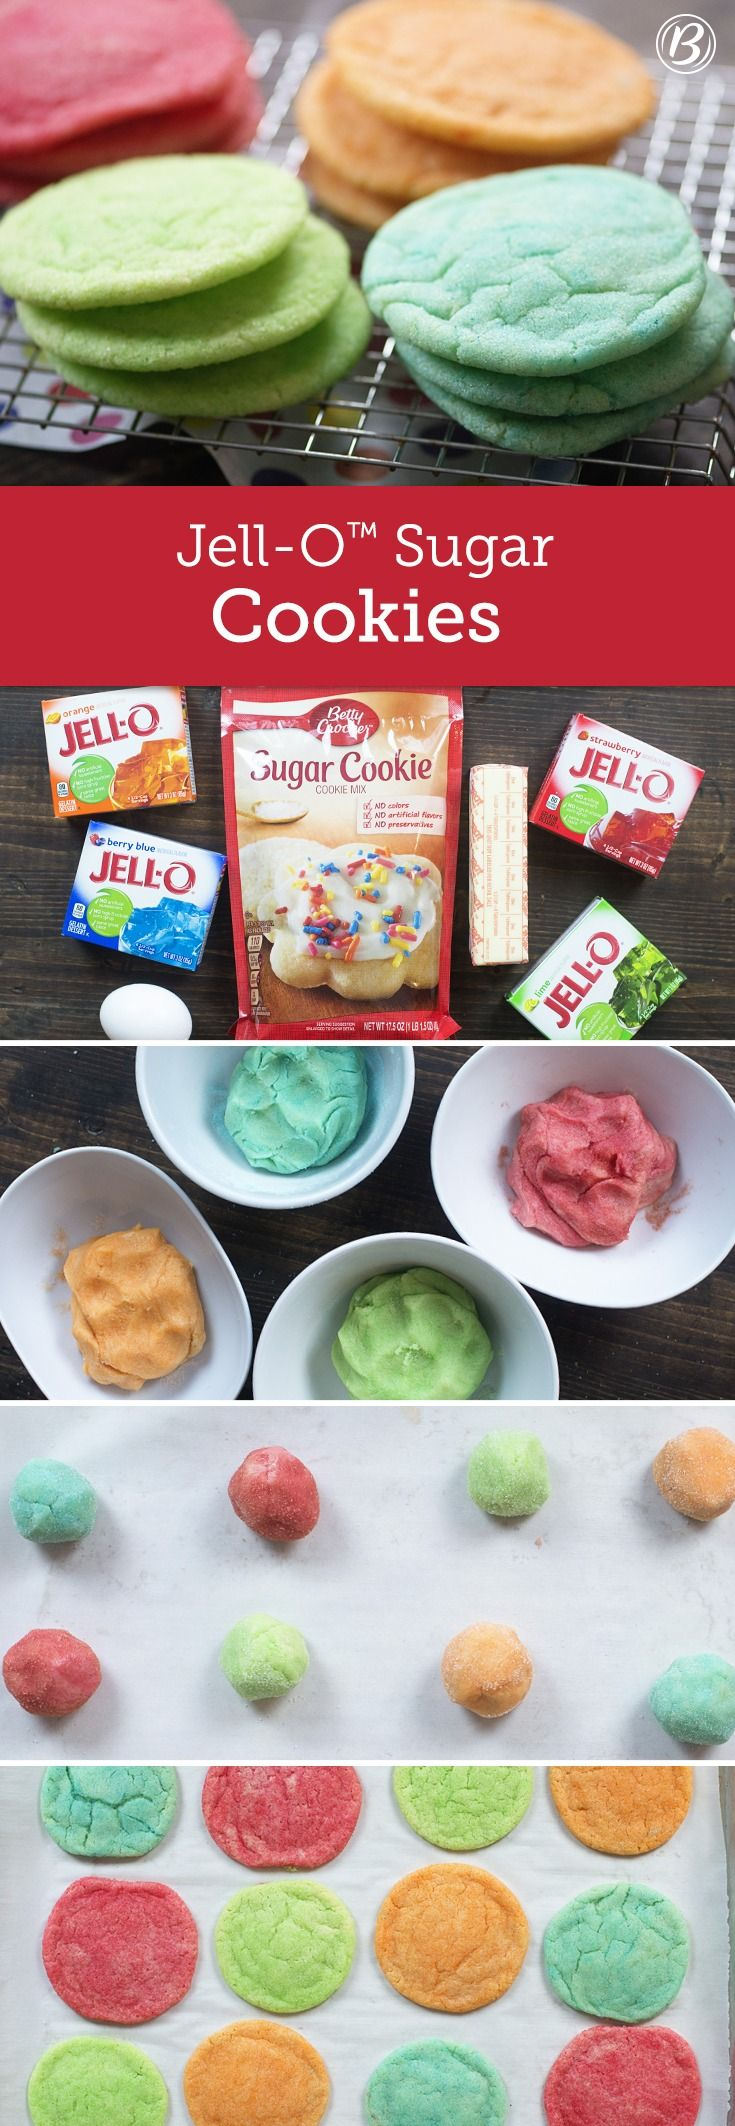 Water and ice activities summer camp at home with 12 weeks of easy - Simple Sugar Cookies Get A Burst Of Color And A Burst Of Flavor Thanks To Jell